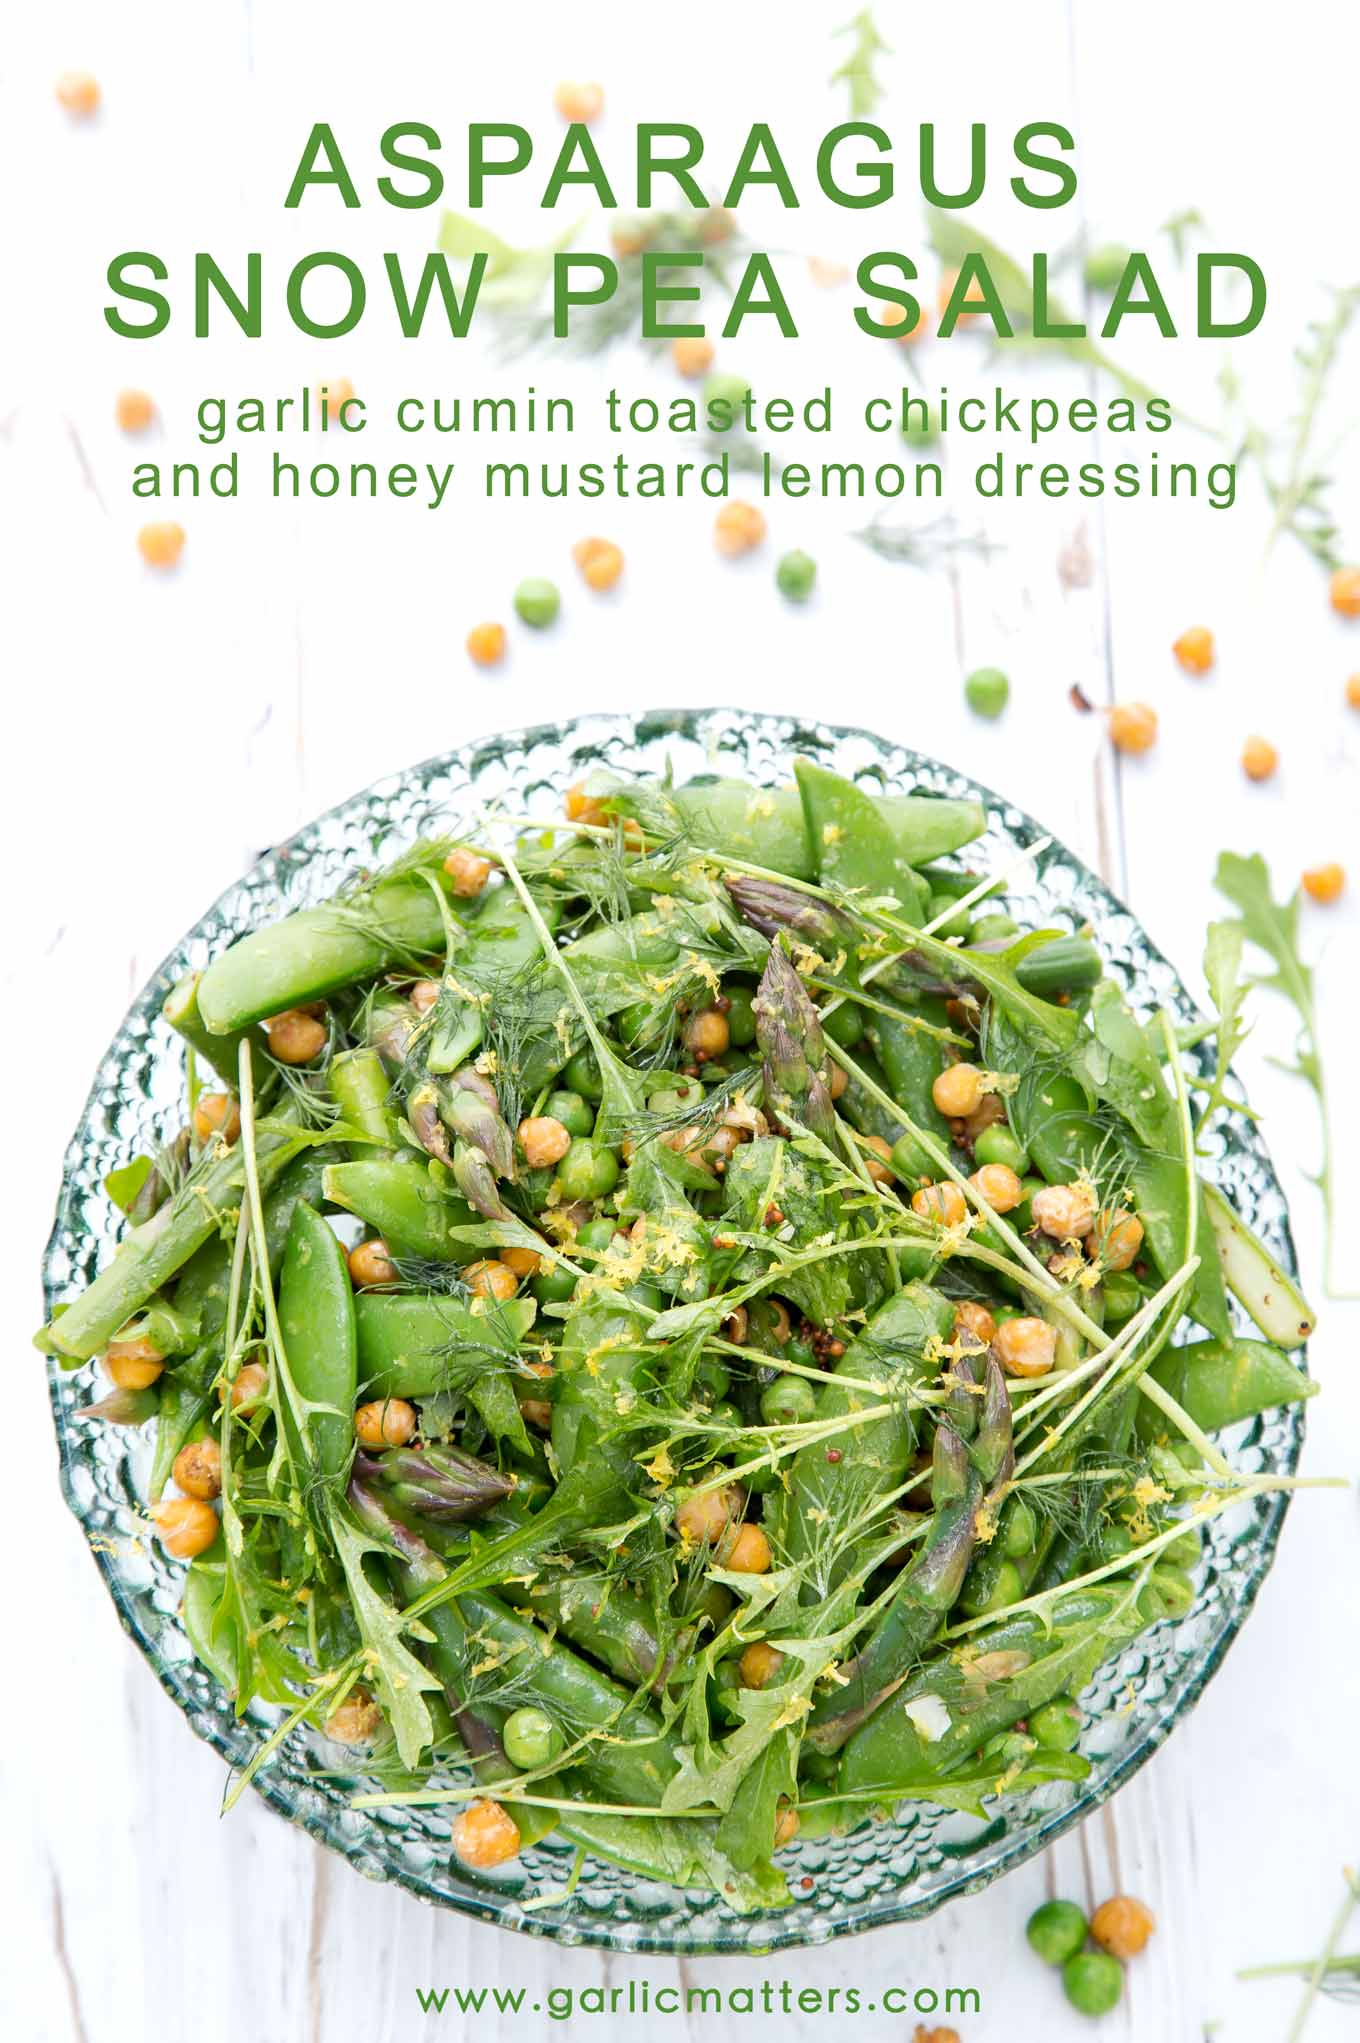 20 min, Asparagus and Snow Pea Salad with garlic cumin toasted chickpeas and honey mustard lemon dressing. Vegan deliciousness!